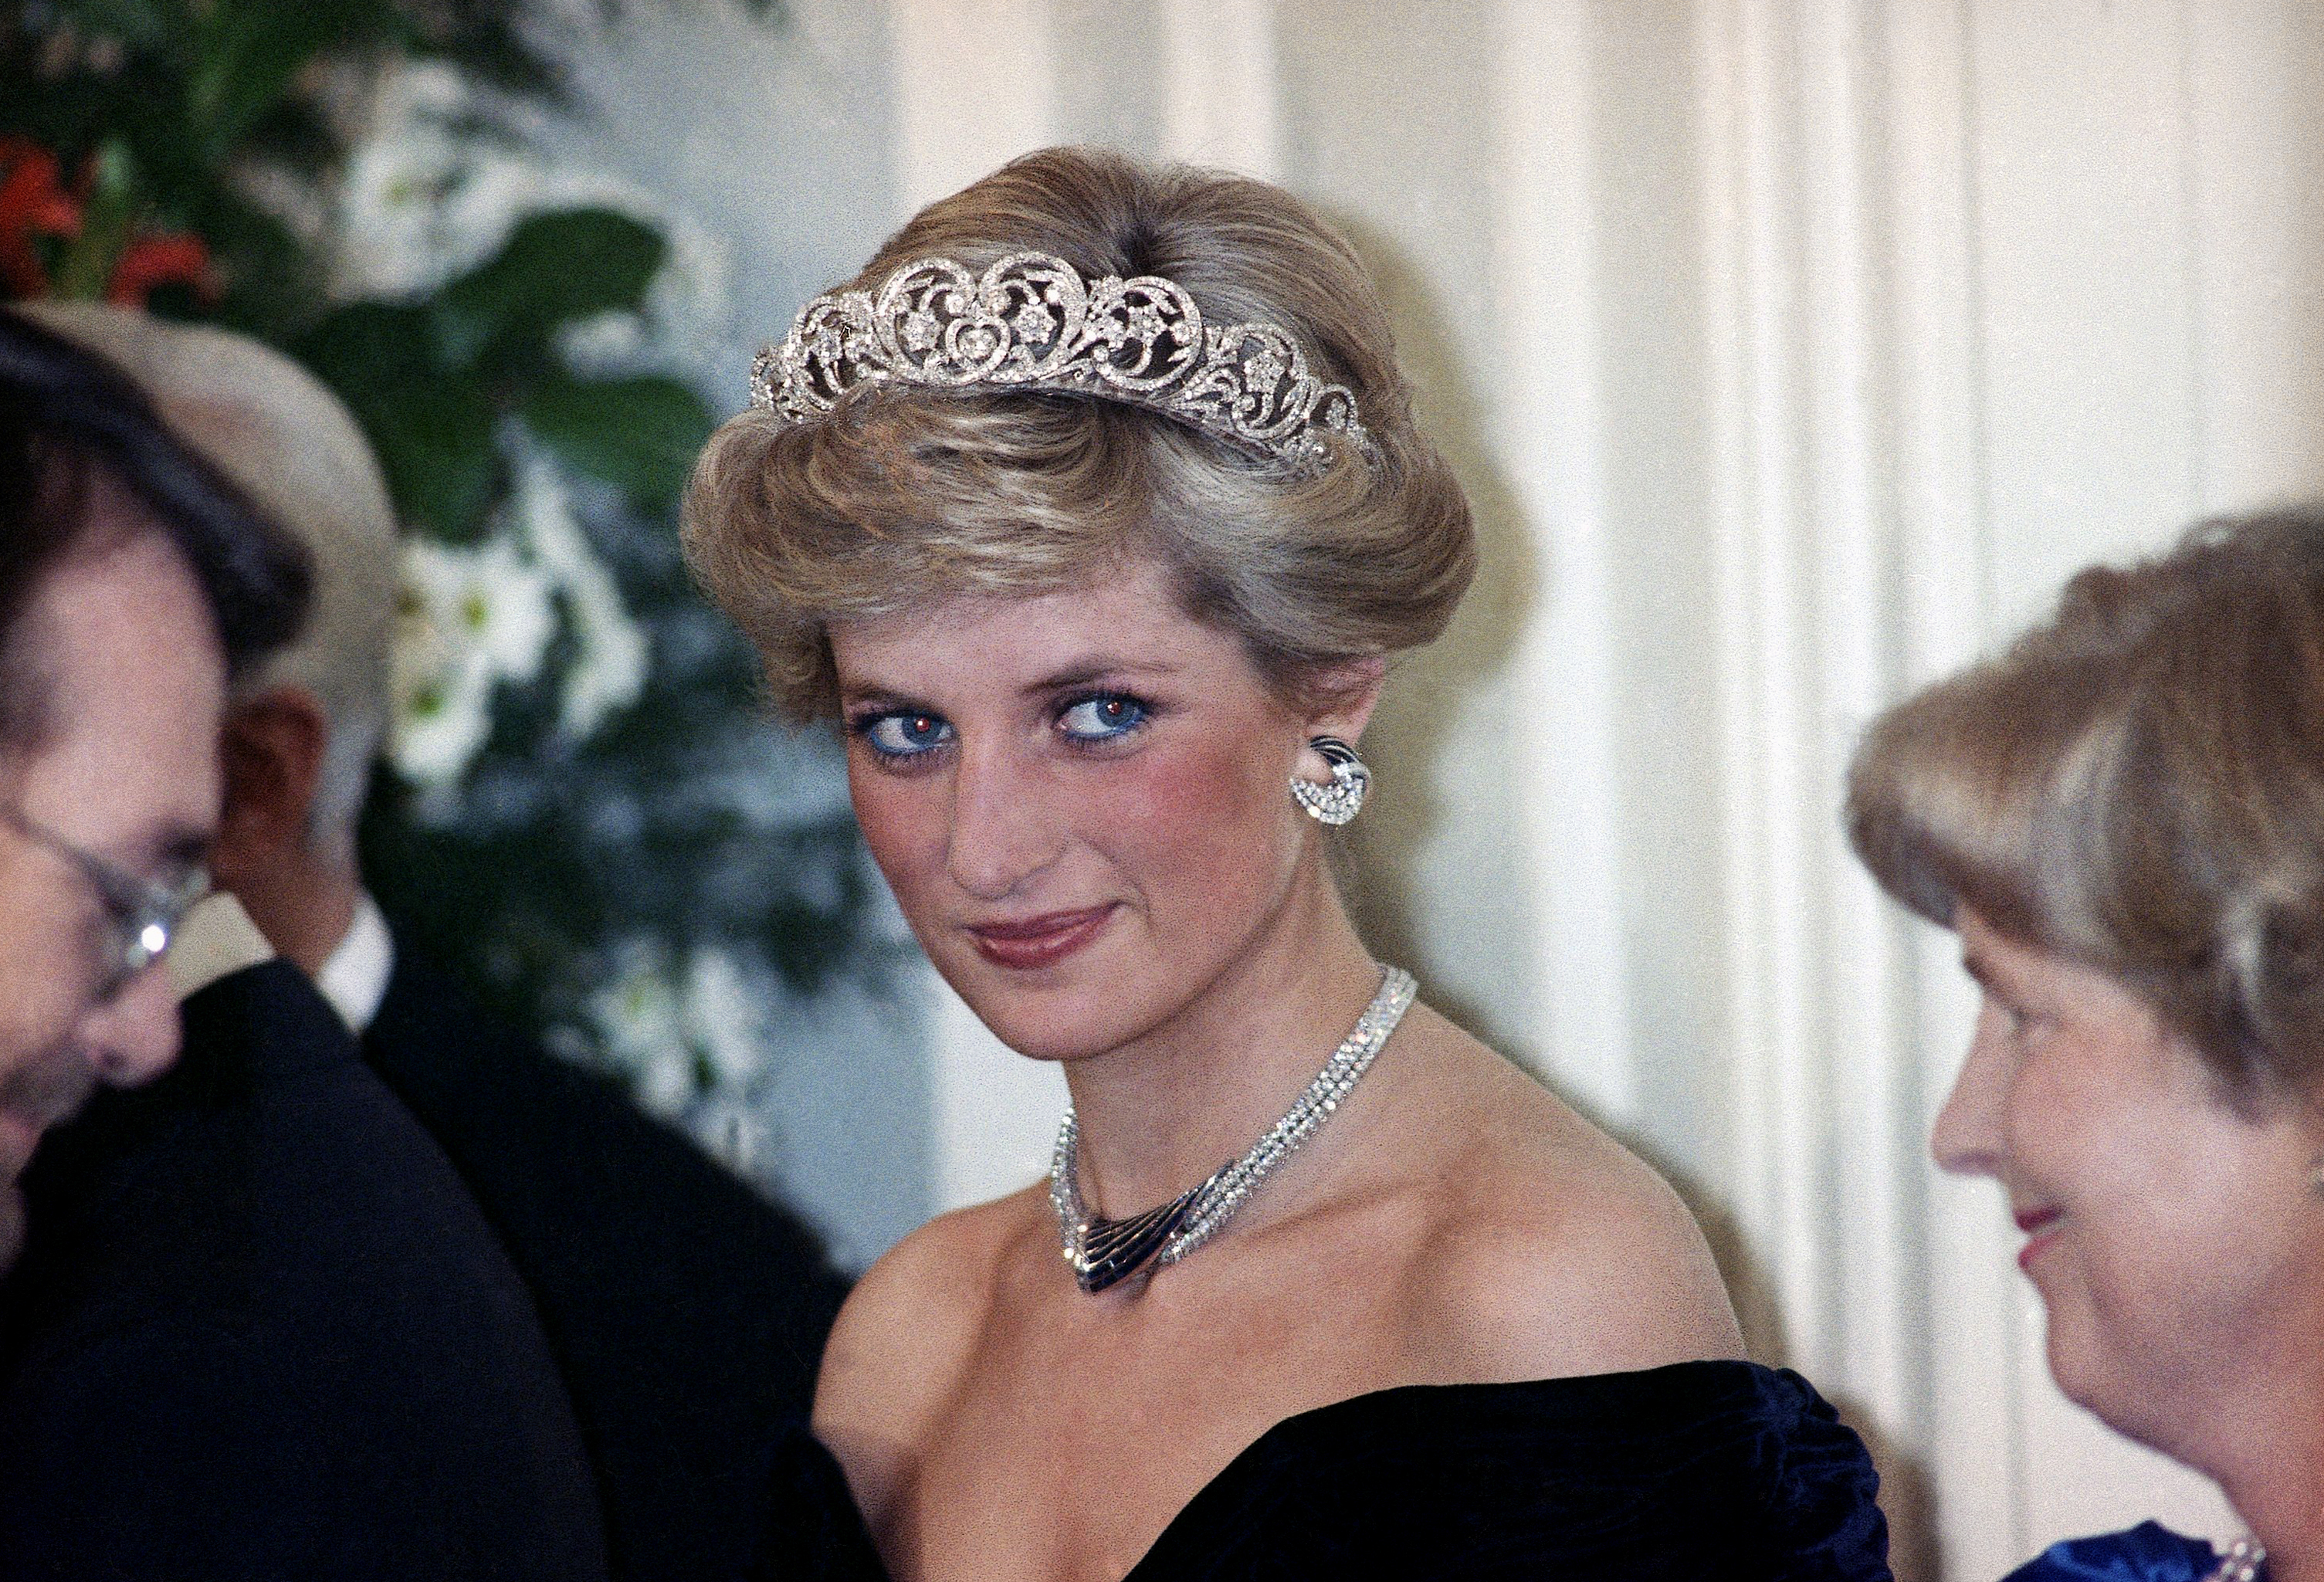 "FILE - In this Monday, Nov. 2, 1987 file photo, Britain's Diana, the Princess of Wales, is pictured during an evening reception given by the West German President Richard von Weizsacker in honour of the British Royal guests in the Godesberg Redoute in Bonn, Germany. It has been 20 years since the death of Princess Diana in a car crash in Paris and the outpouring of grief that followed the death of the ""people's princess."" (AP Photo/Herman Knippertz, File)"